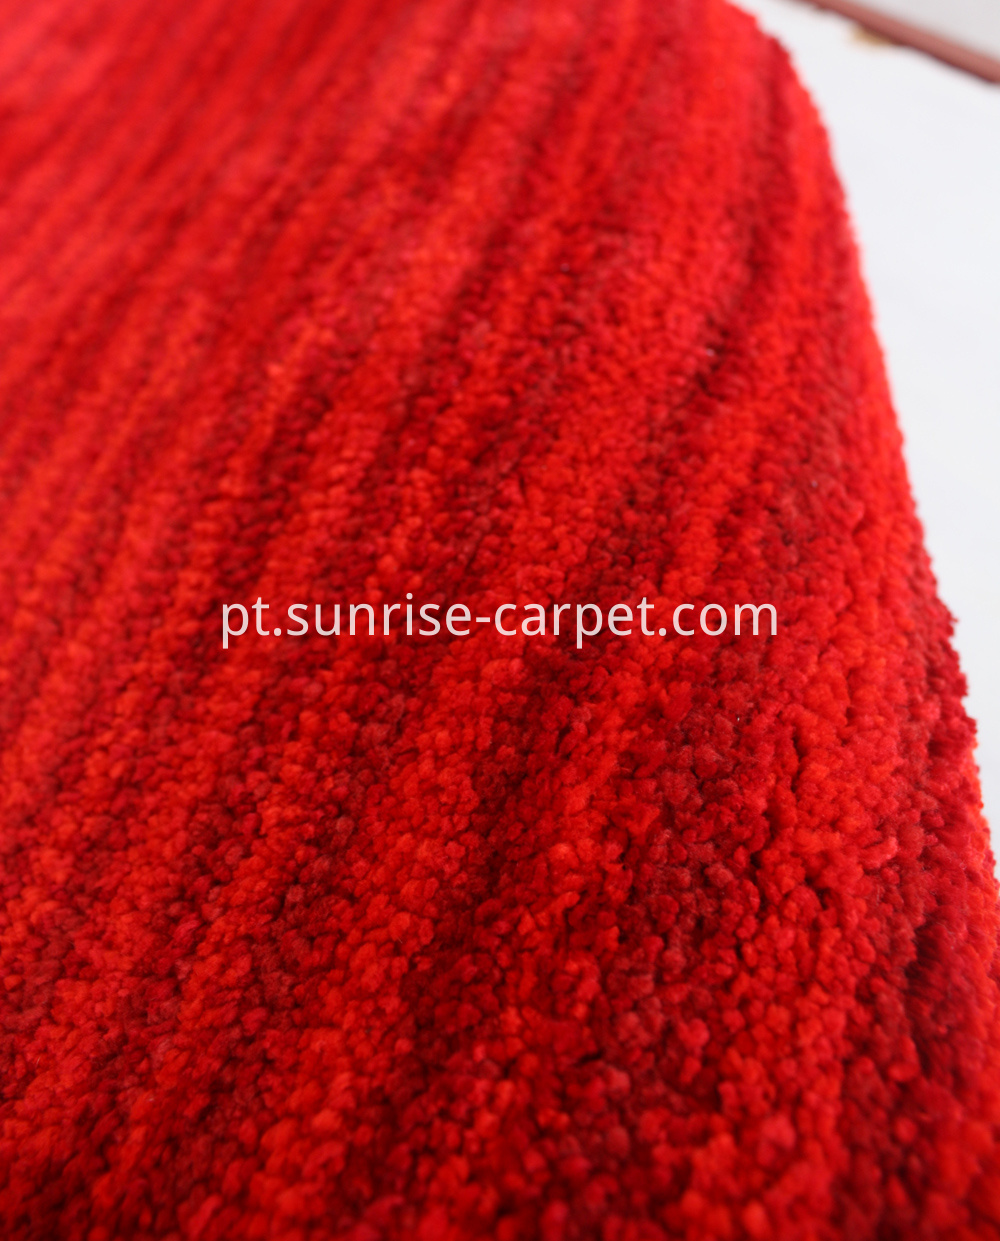 microfiber shaggy with design short pile red